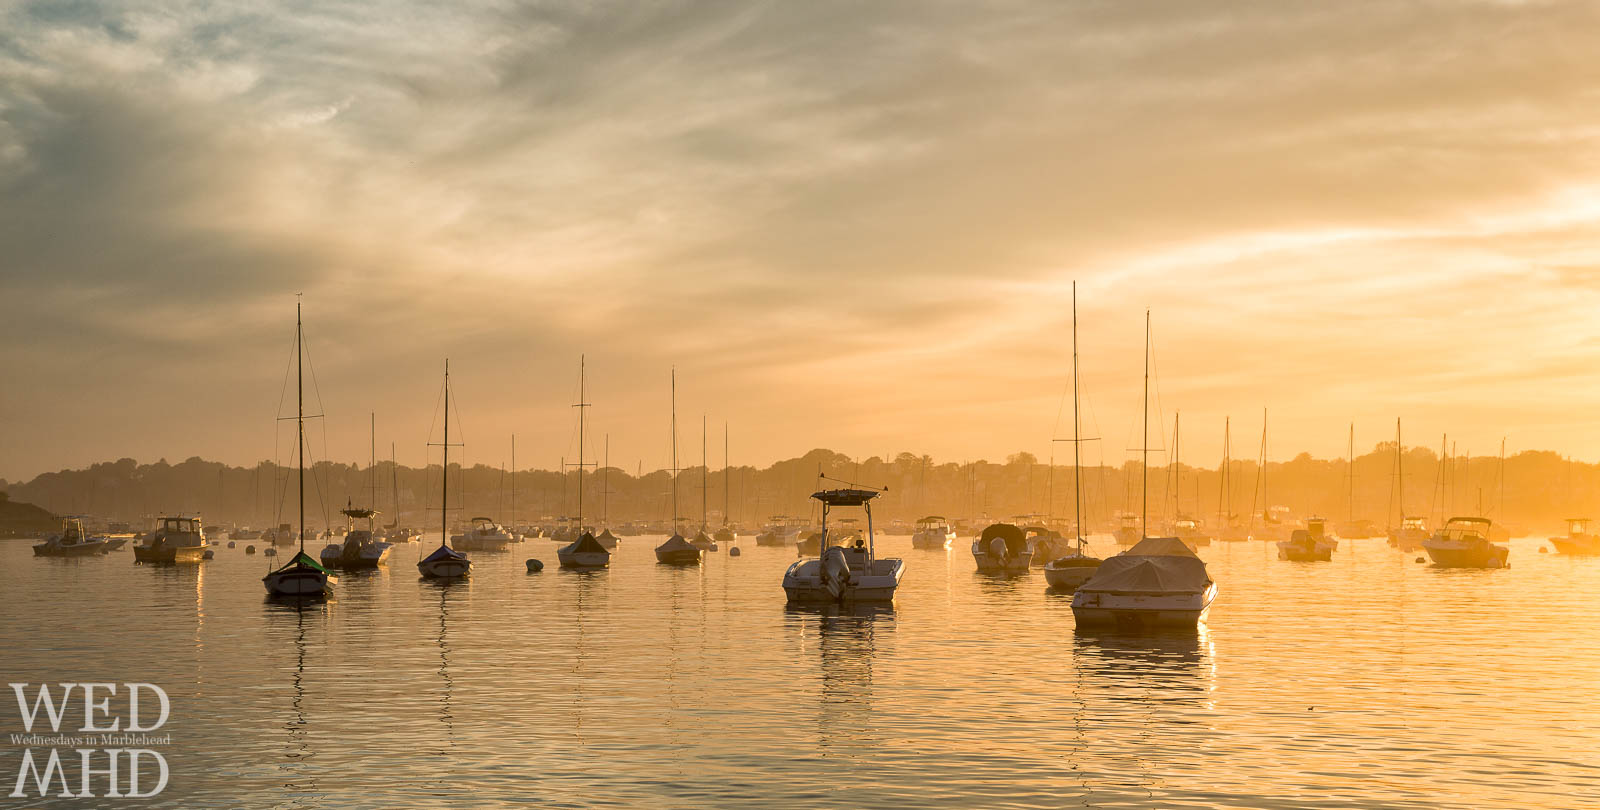 Boats moored in Marblehead seem to float on a golden harbor as the sunset is diffused by evening fog to create a beautiful scene